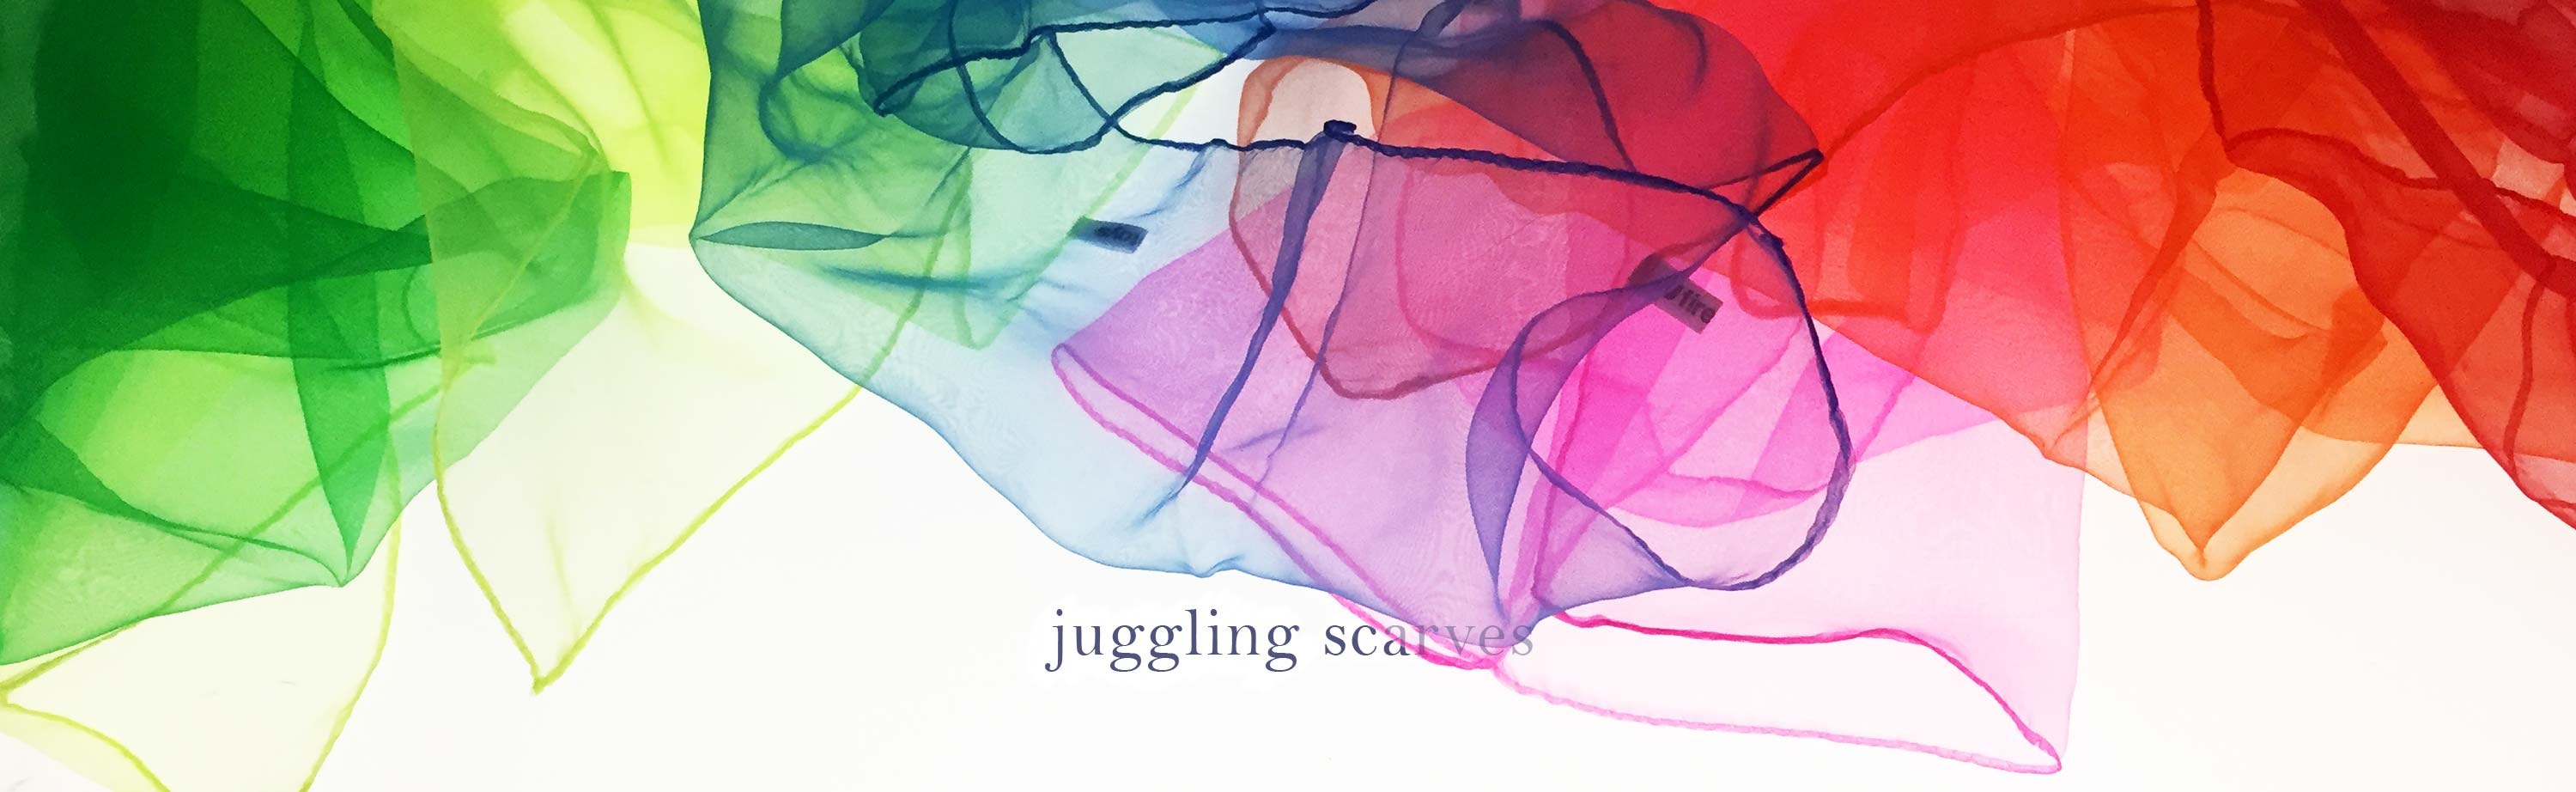 Juggling Scarves